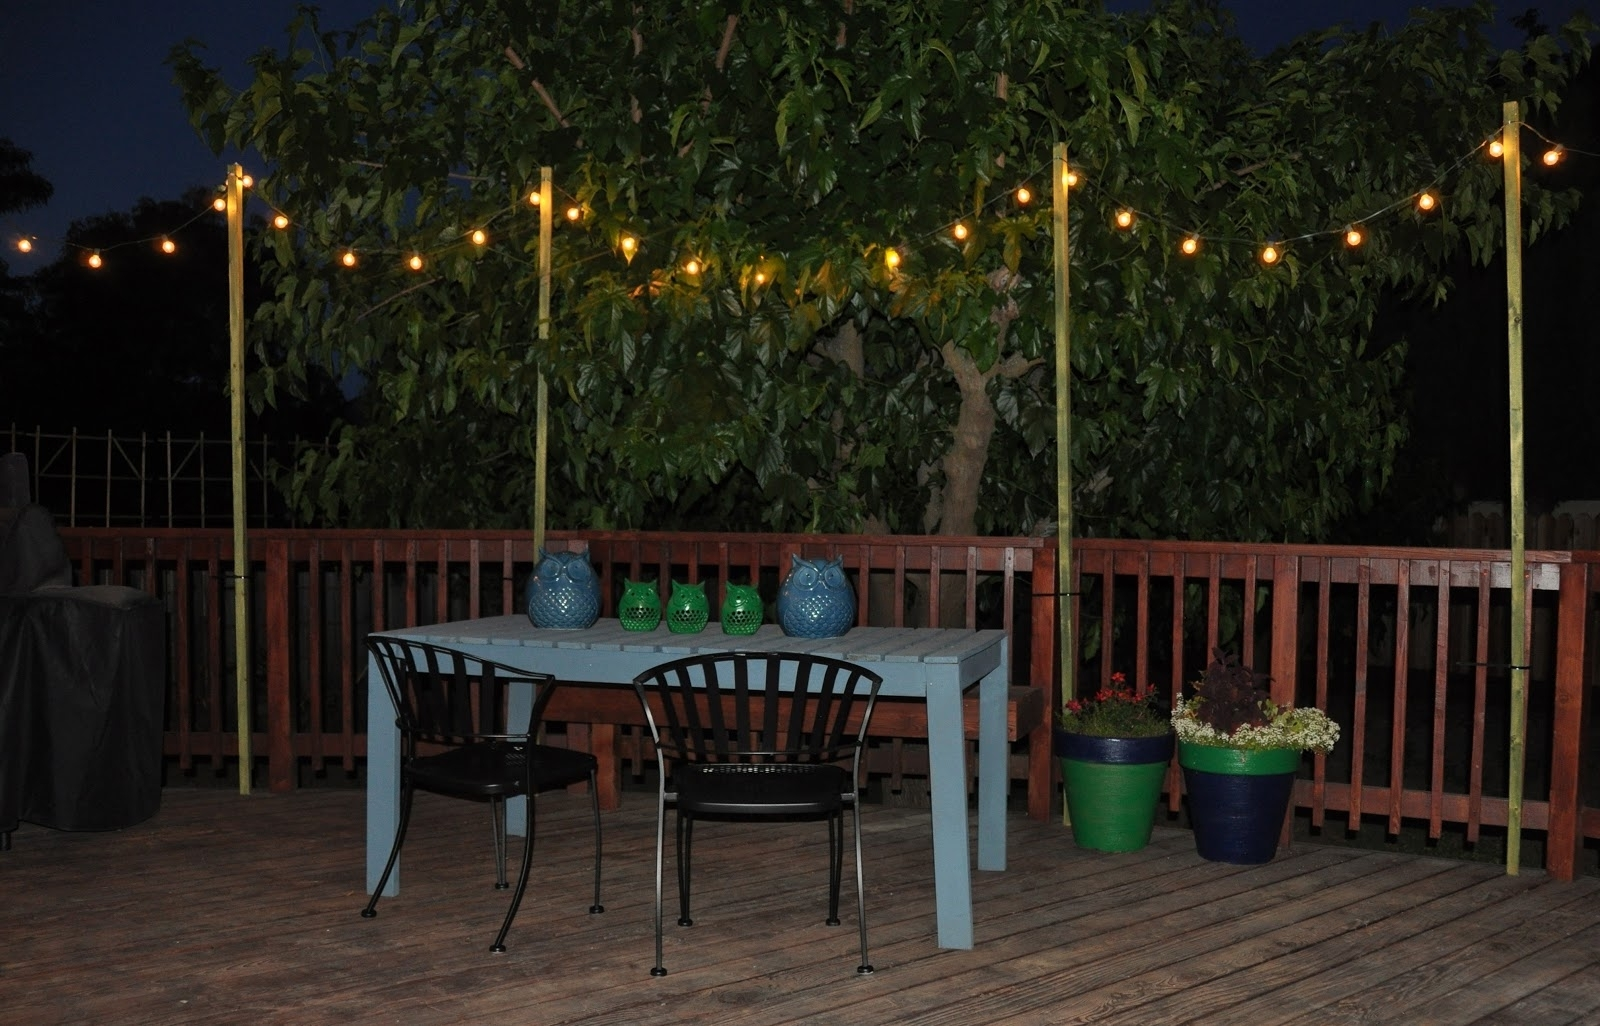 Famous How To Hang String Lights Outsidehanging Outdoor Patio Lights On Within Hanging Outdoor Lights For A Party (View 2 of 20)